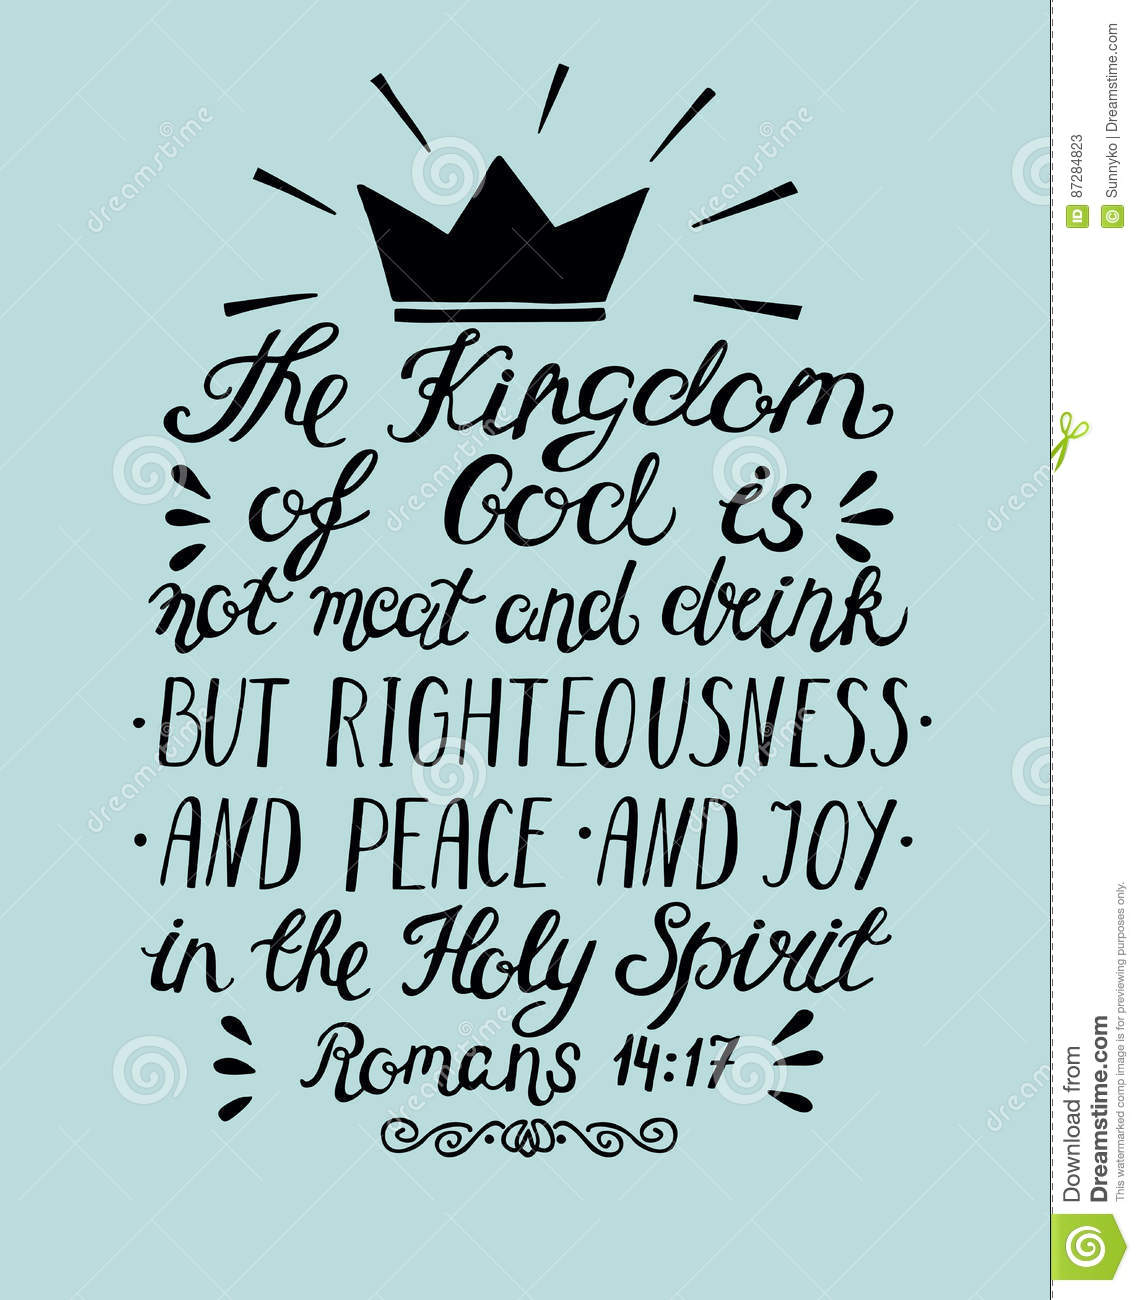 Bible Verse The Kingdom Of God Is Not Meat And Drink But ...